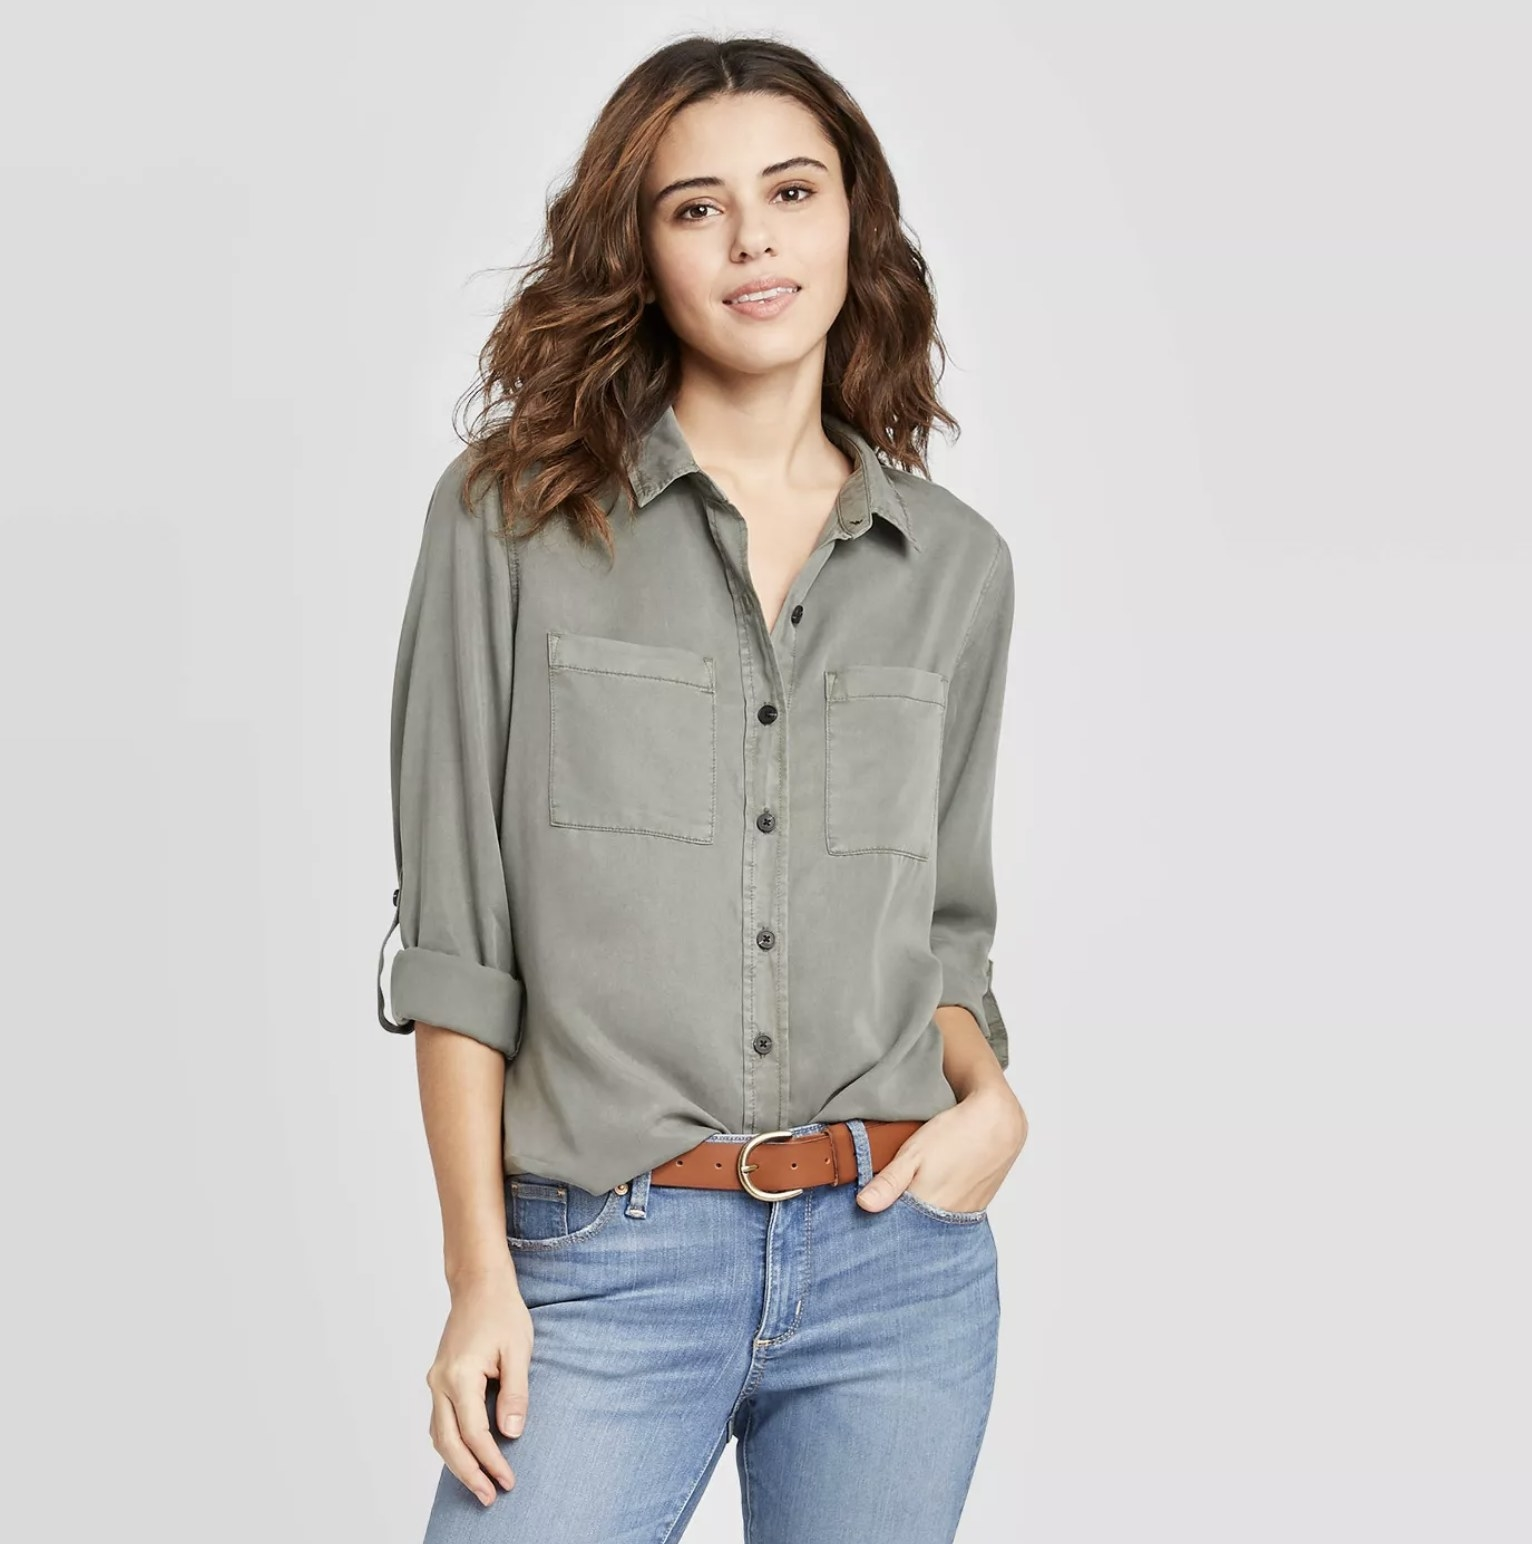 model wearing olive green button-up shirt